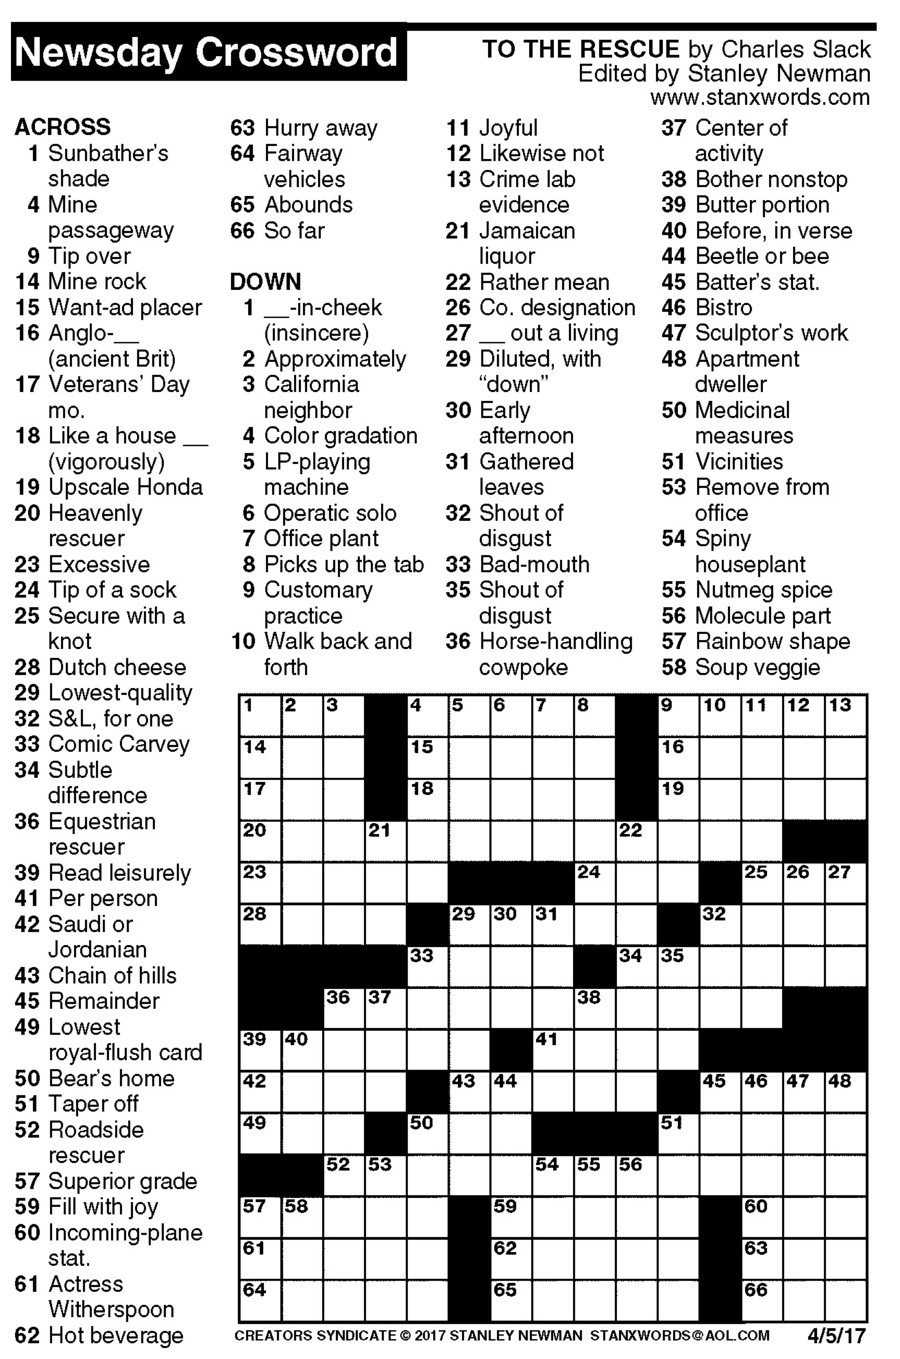 Newsday Crossword Puzzle For Apr 05, 2017,stanley Newman - Printable Crossword Newsday